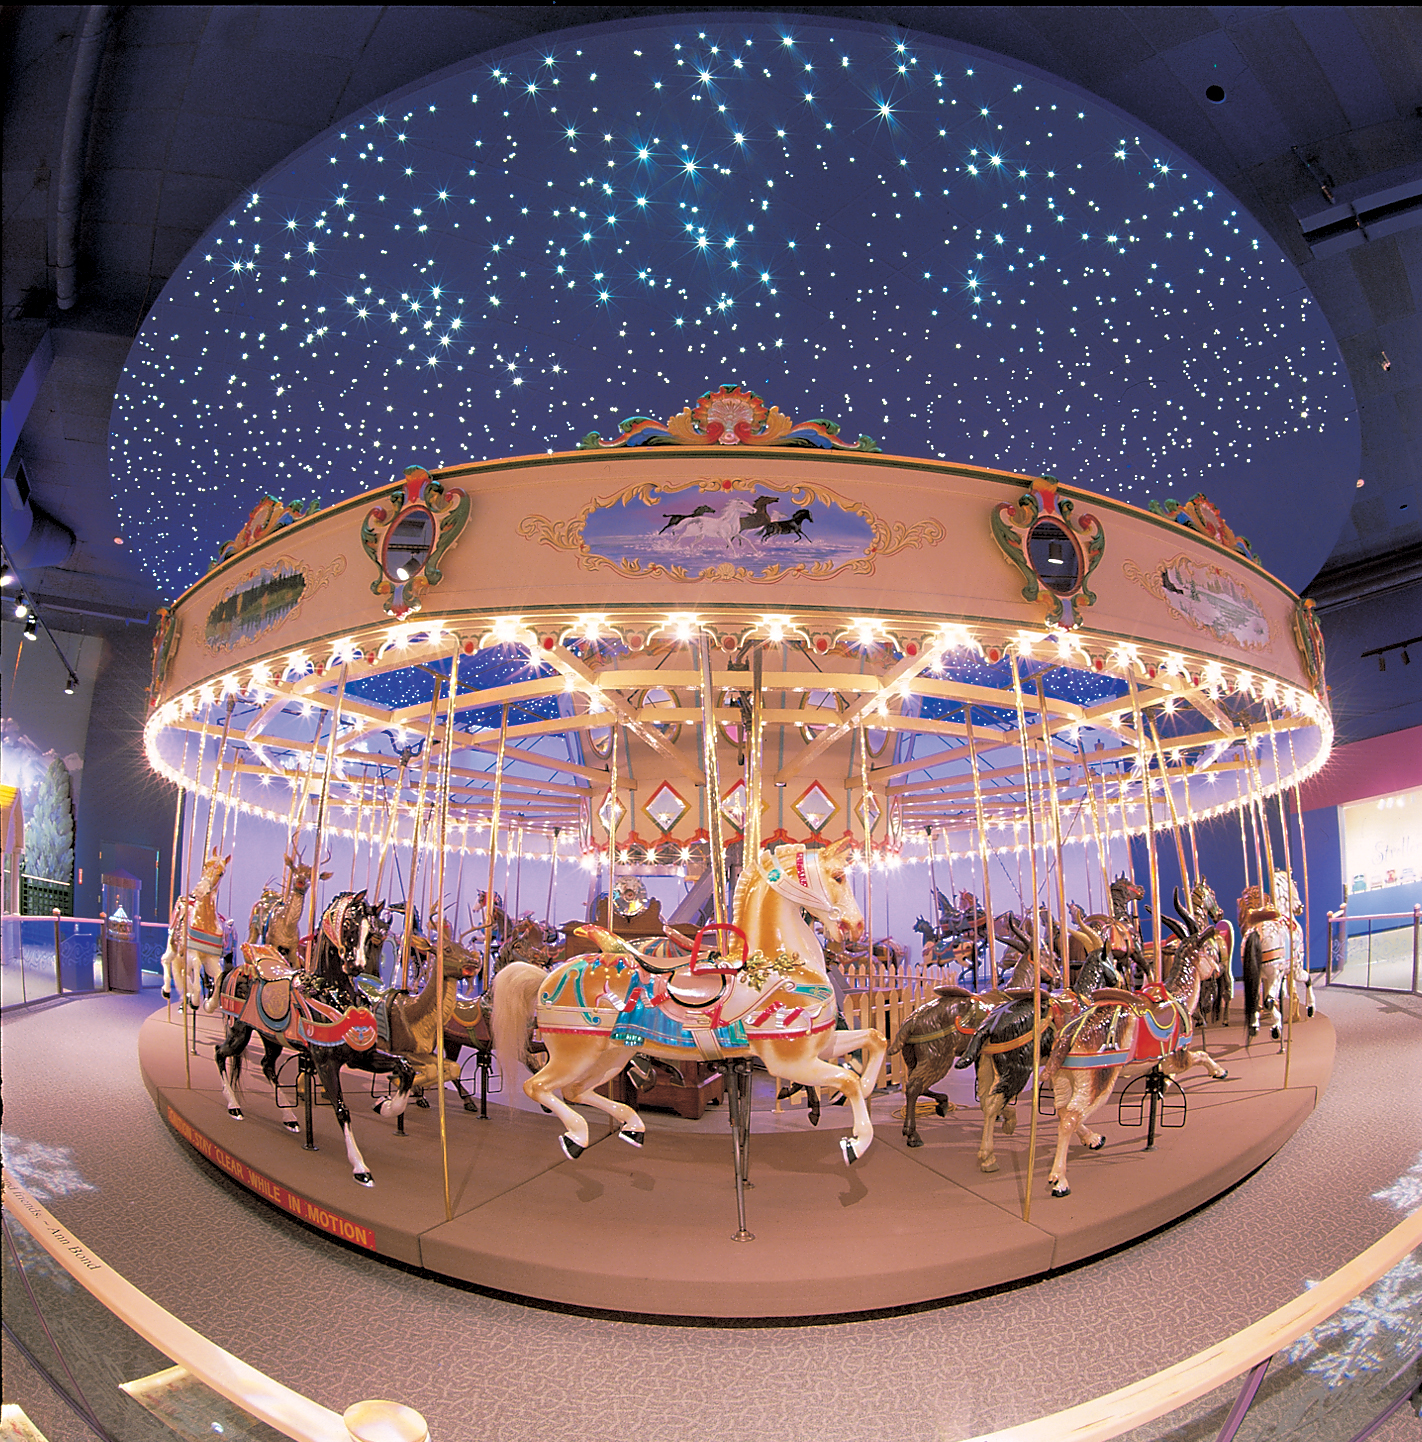 A Century Of Wishes And Dreams Come True As The Dentzel Carousel At The Childrens Museum Of